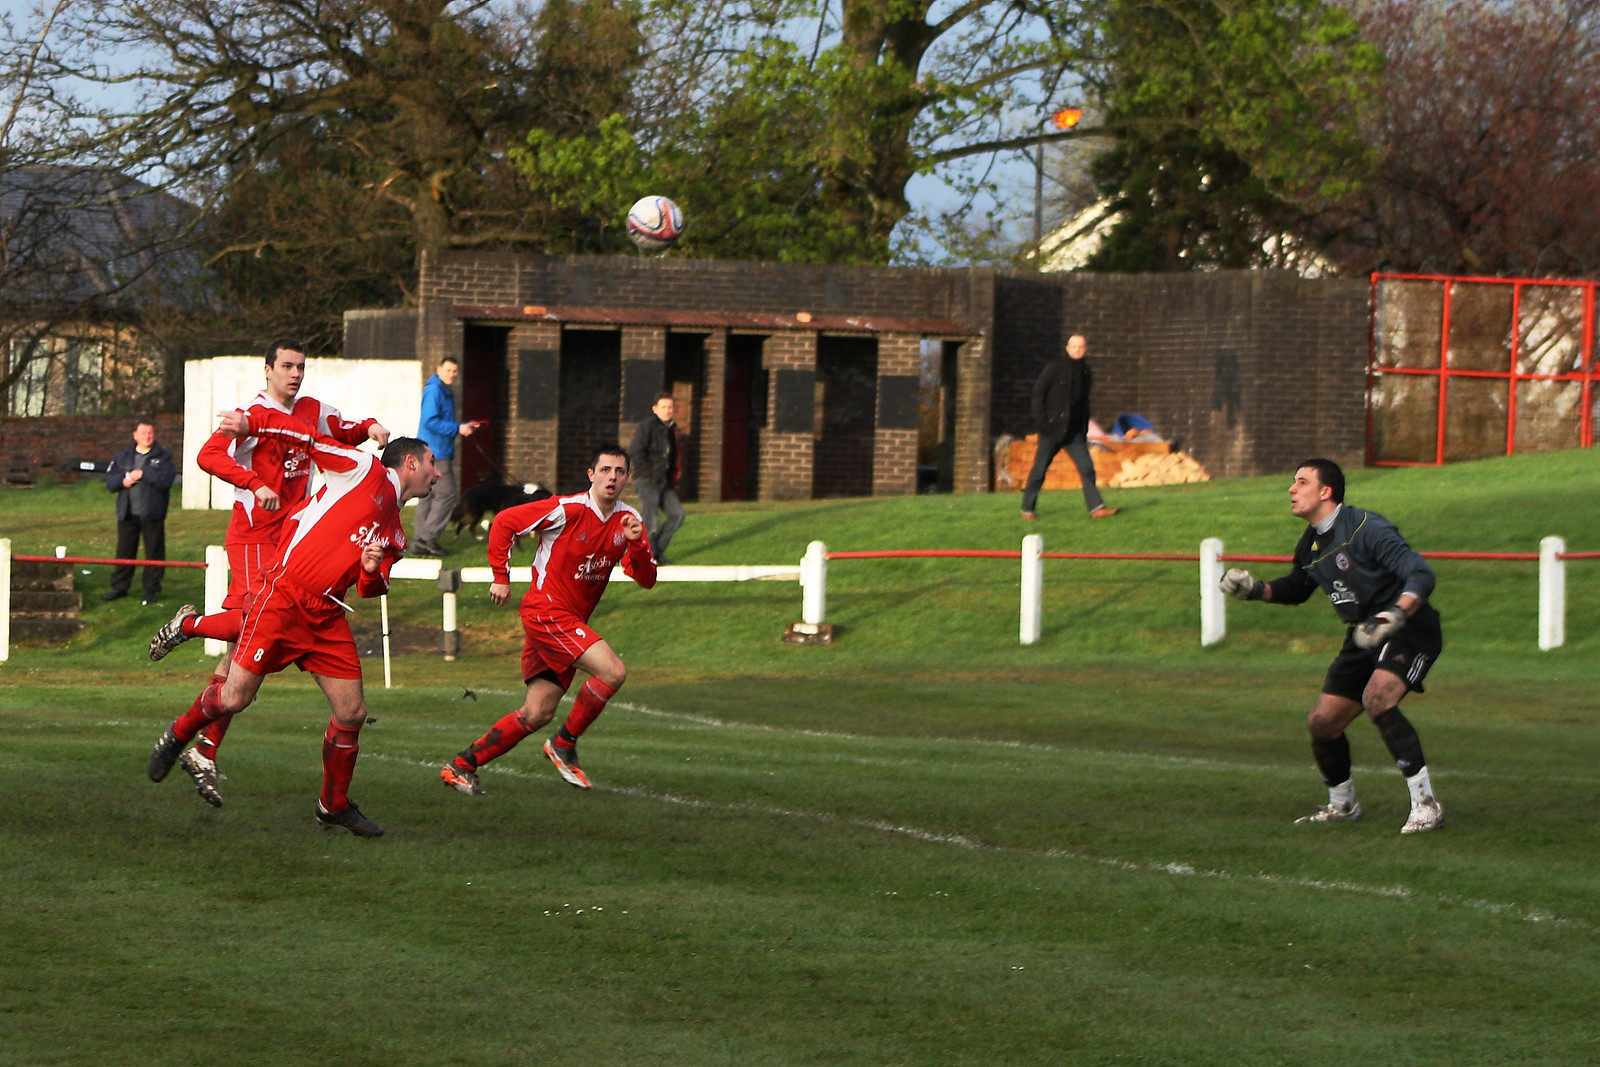 Colin Smith head over the Maryhill keeper, but the shot was cleared off the line